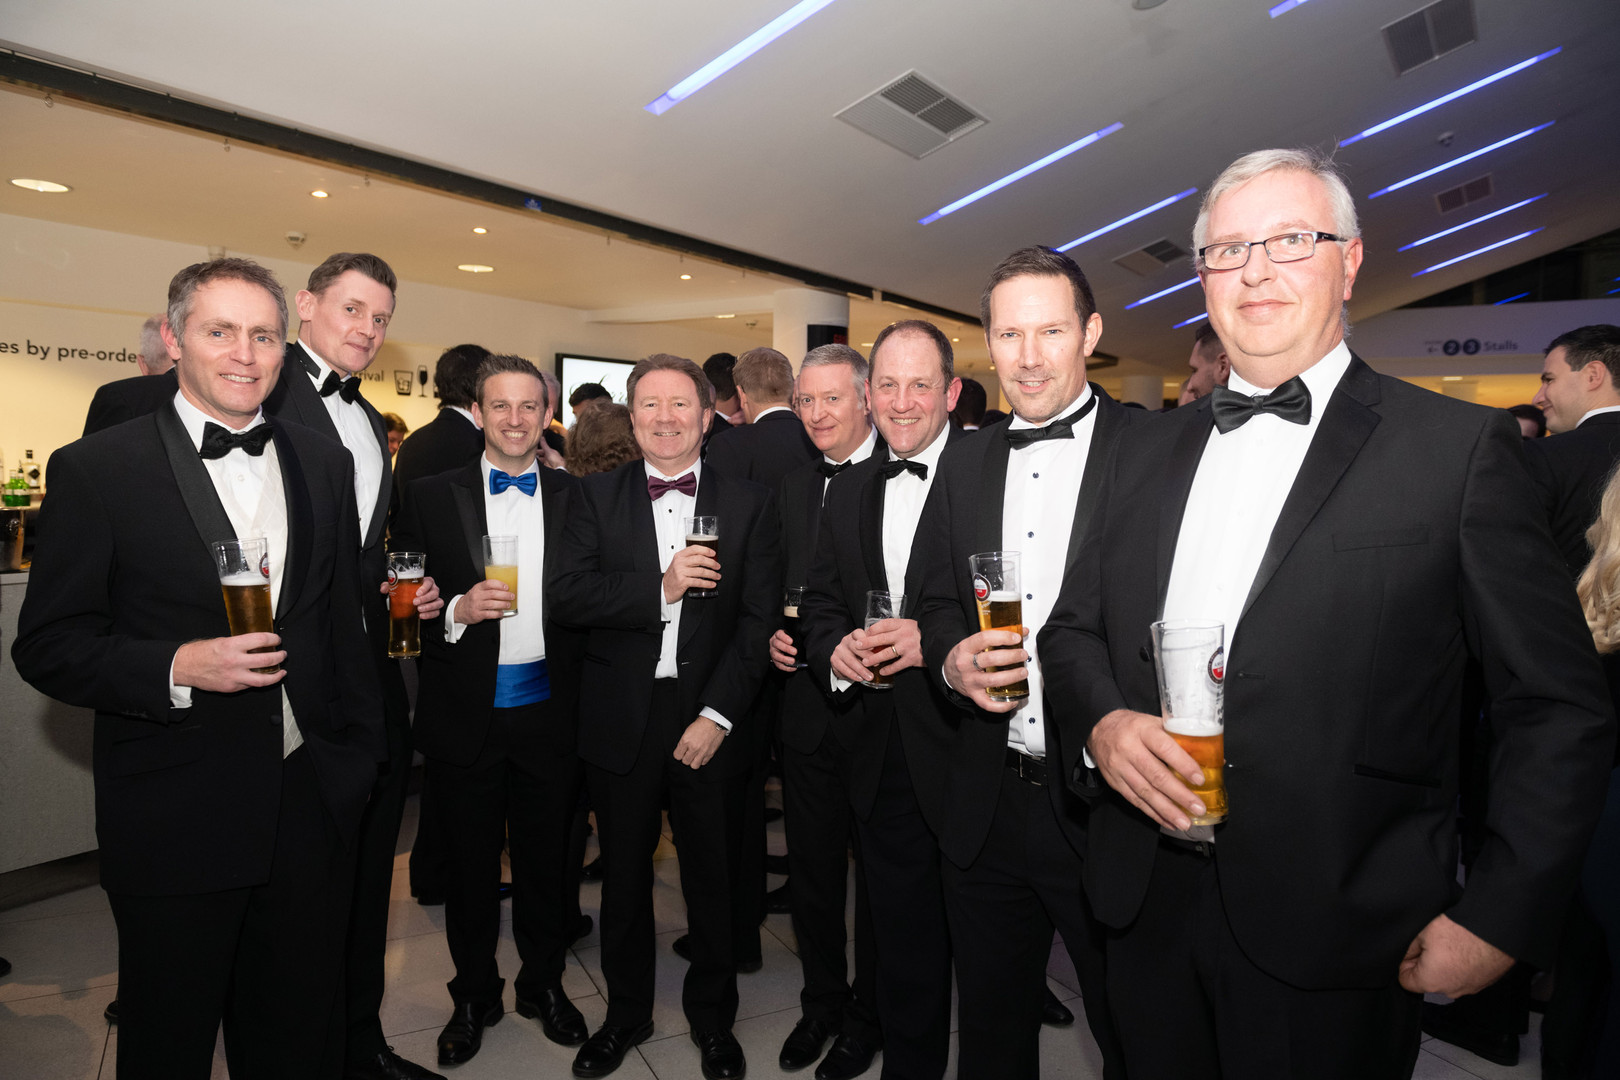 SurreyPropertyAwards_Nov2019_178.jpg